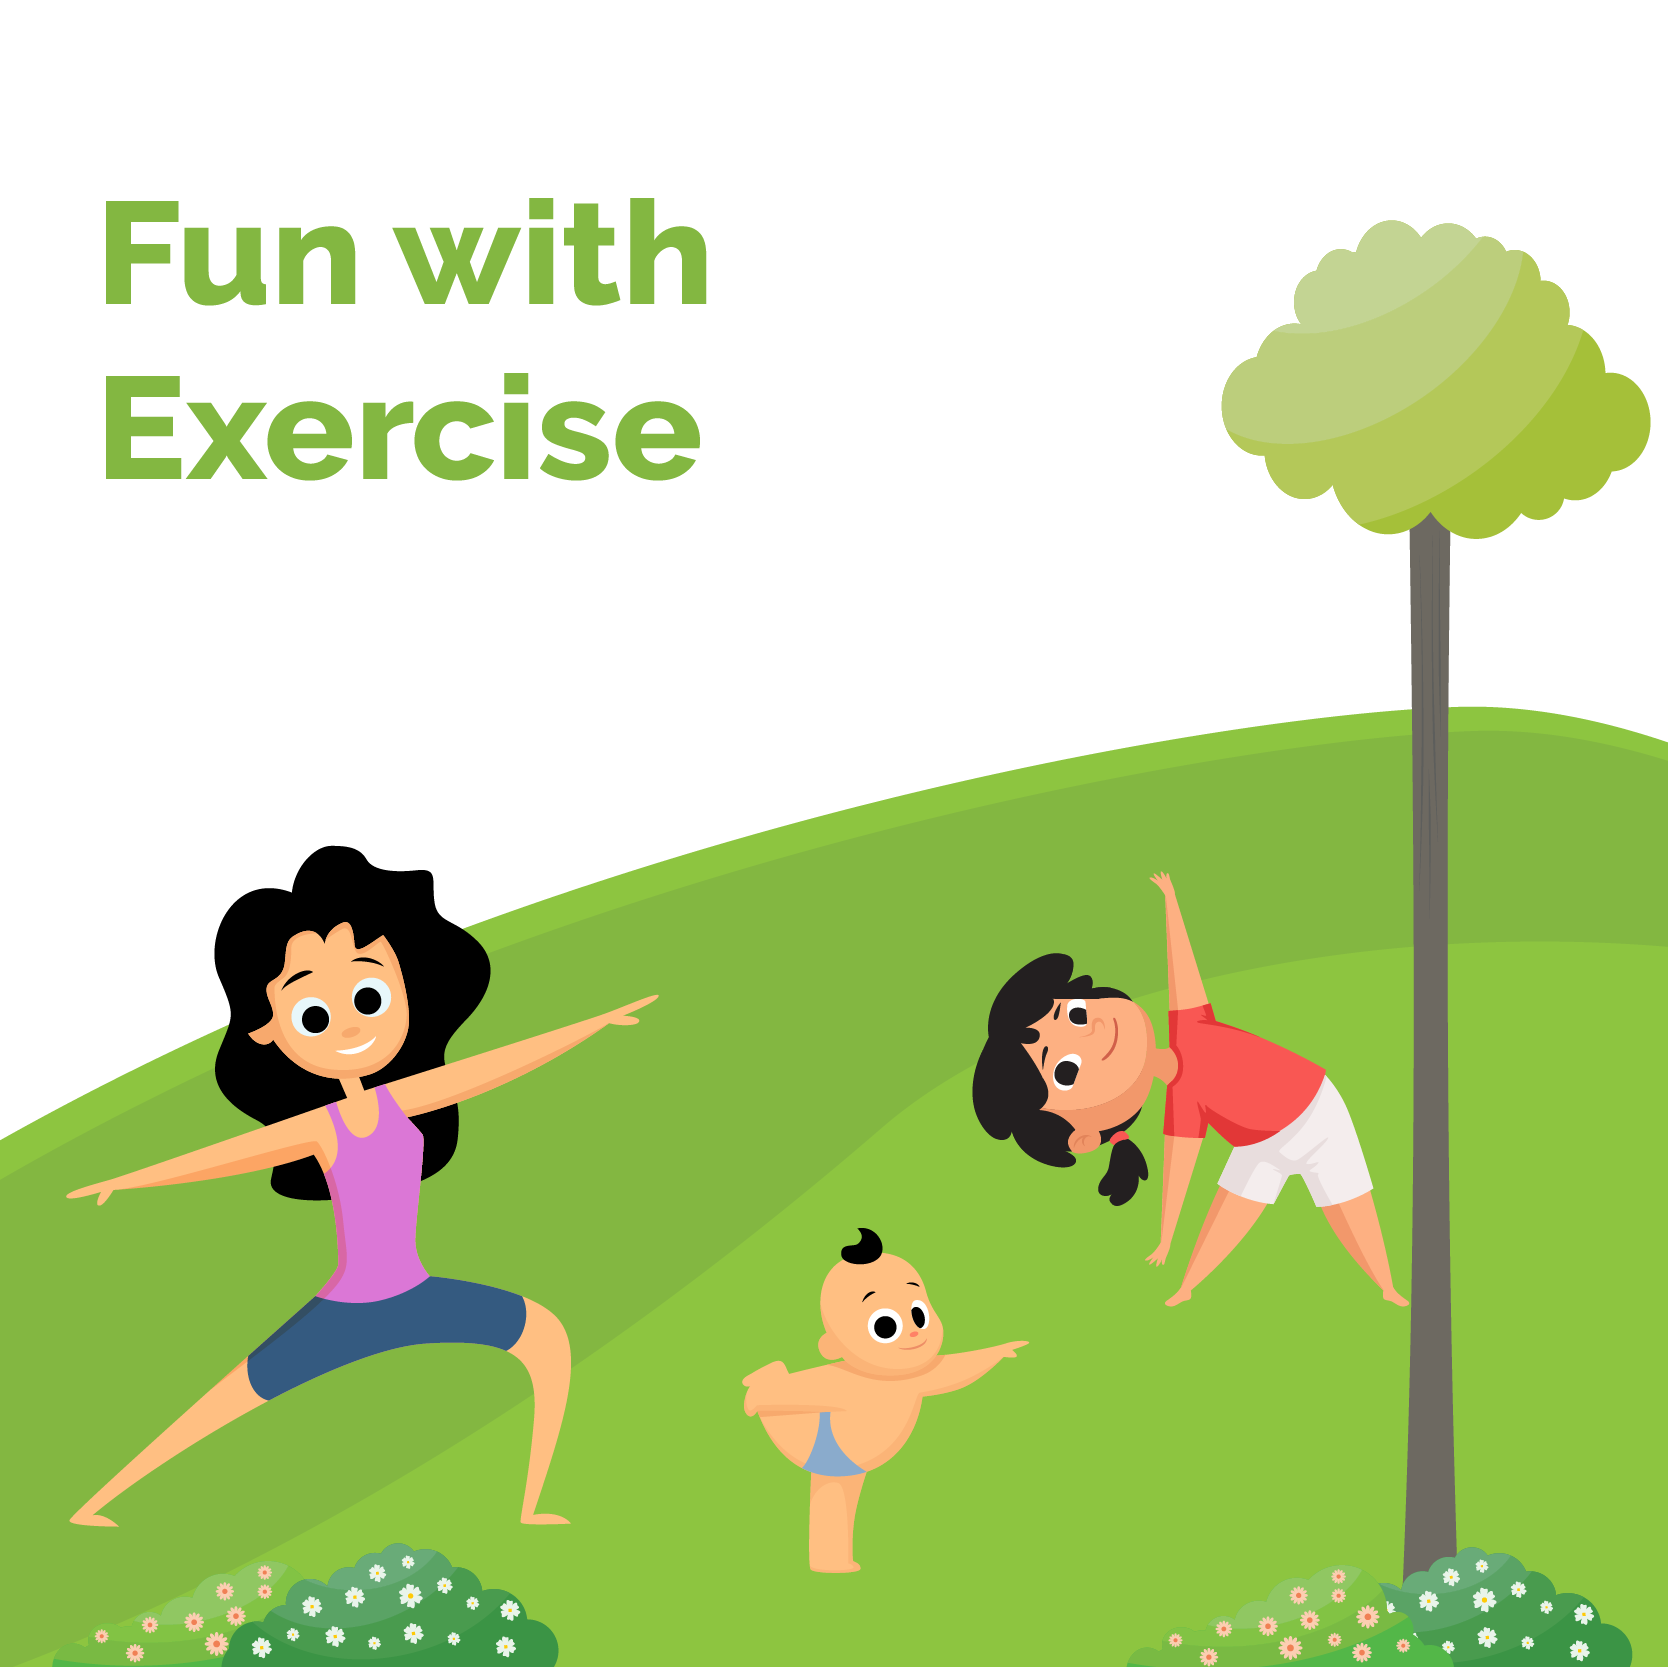 Fun with exercise